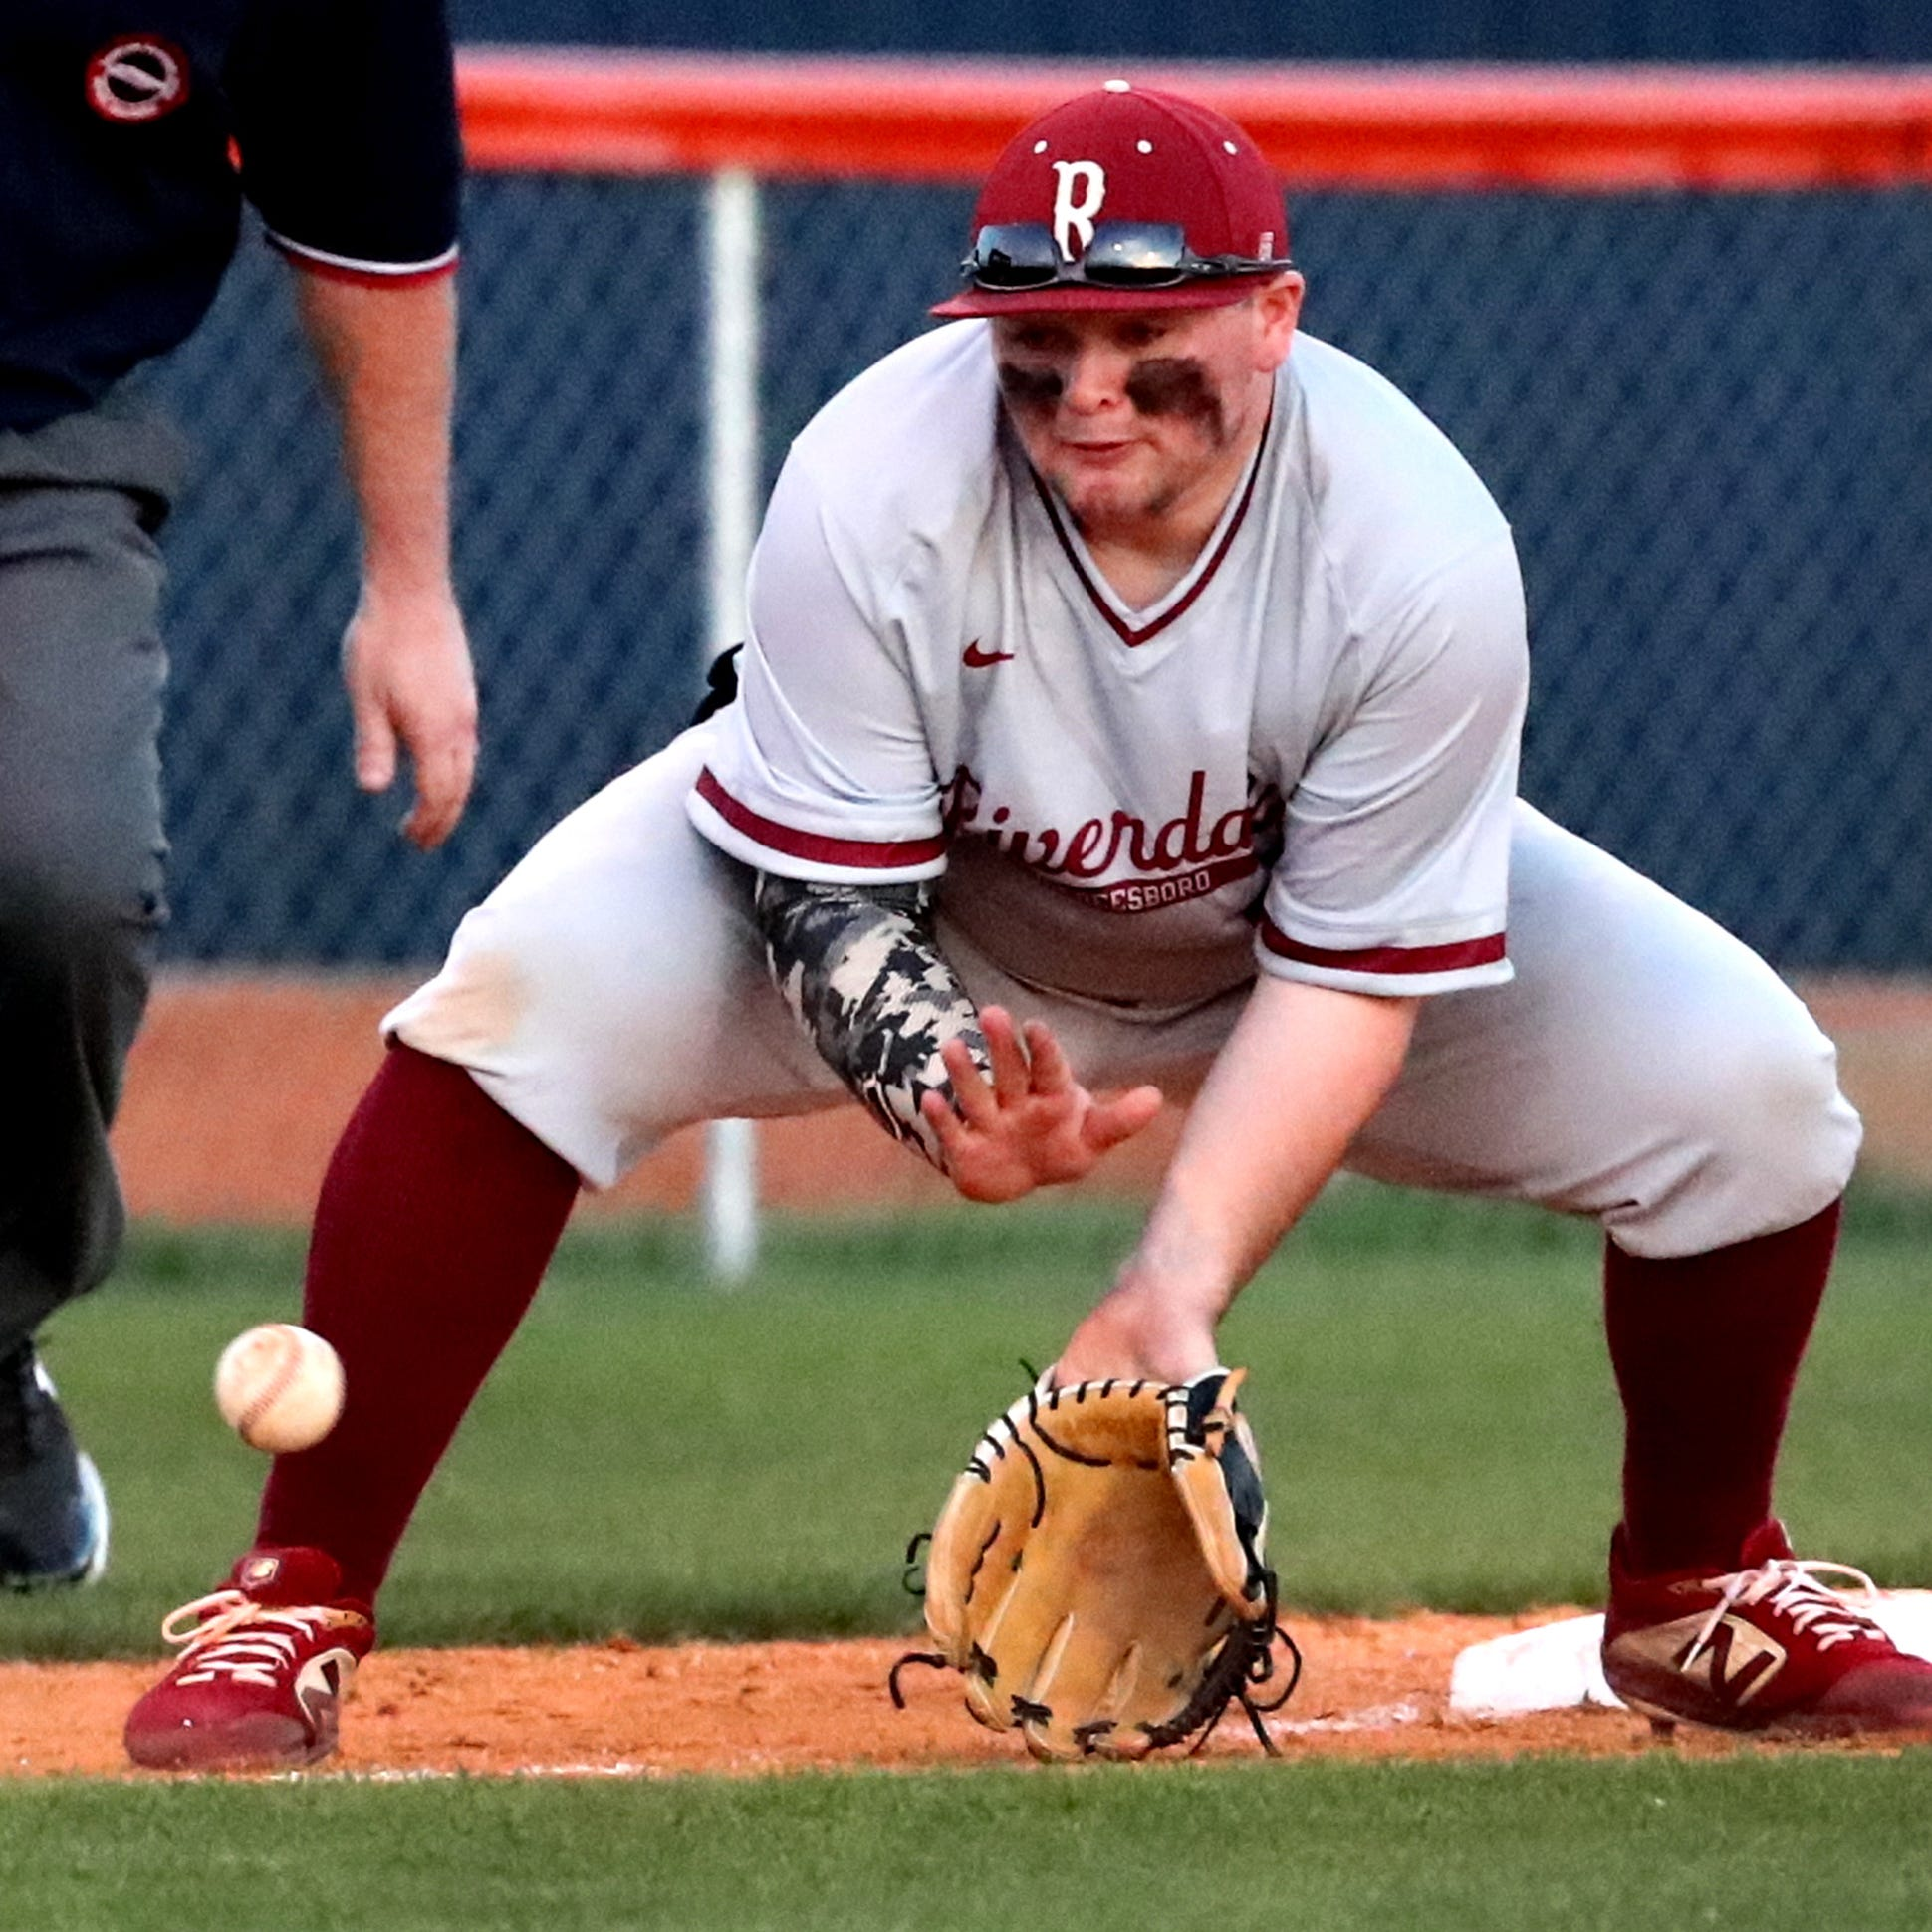 Riverdale's third baseman Johnny Powers (10) fields the ball and tires to out the Blackman runner on third base on Tuesday April 16, 2019.